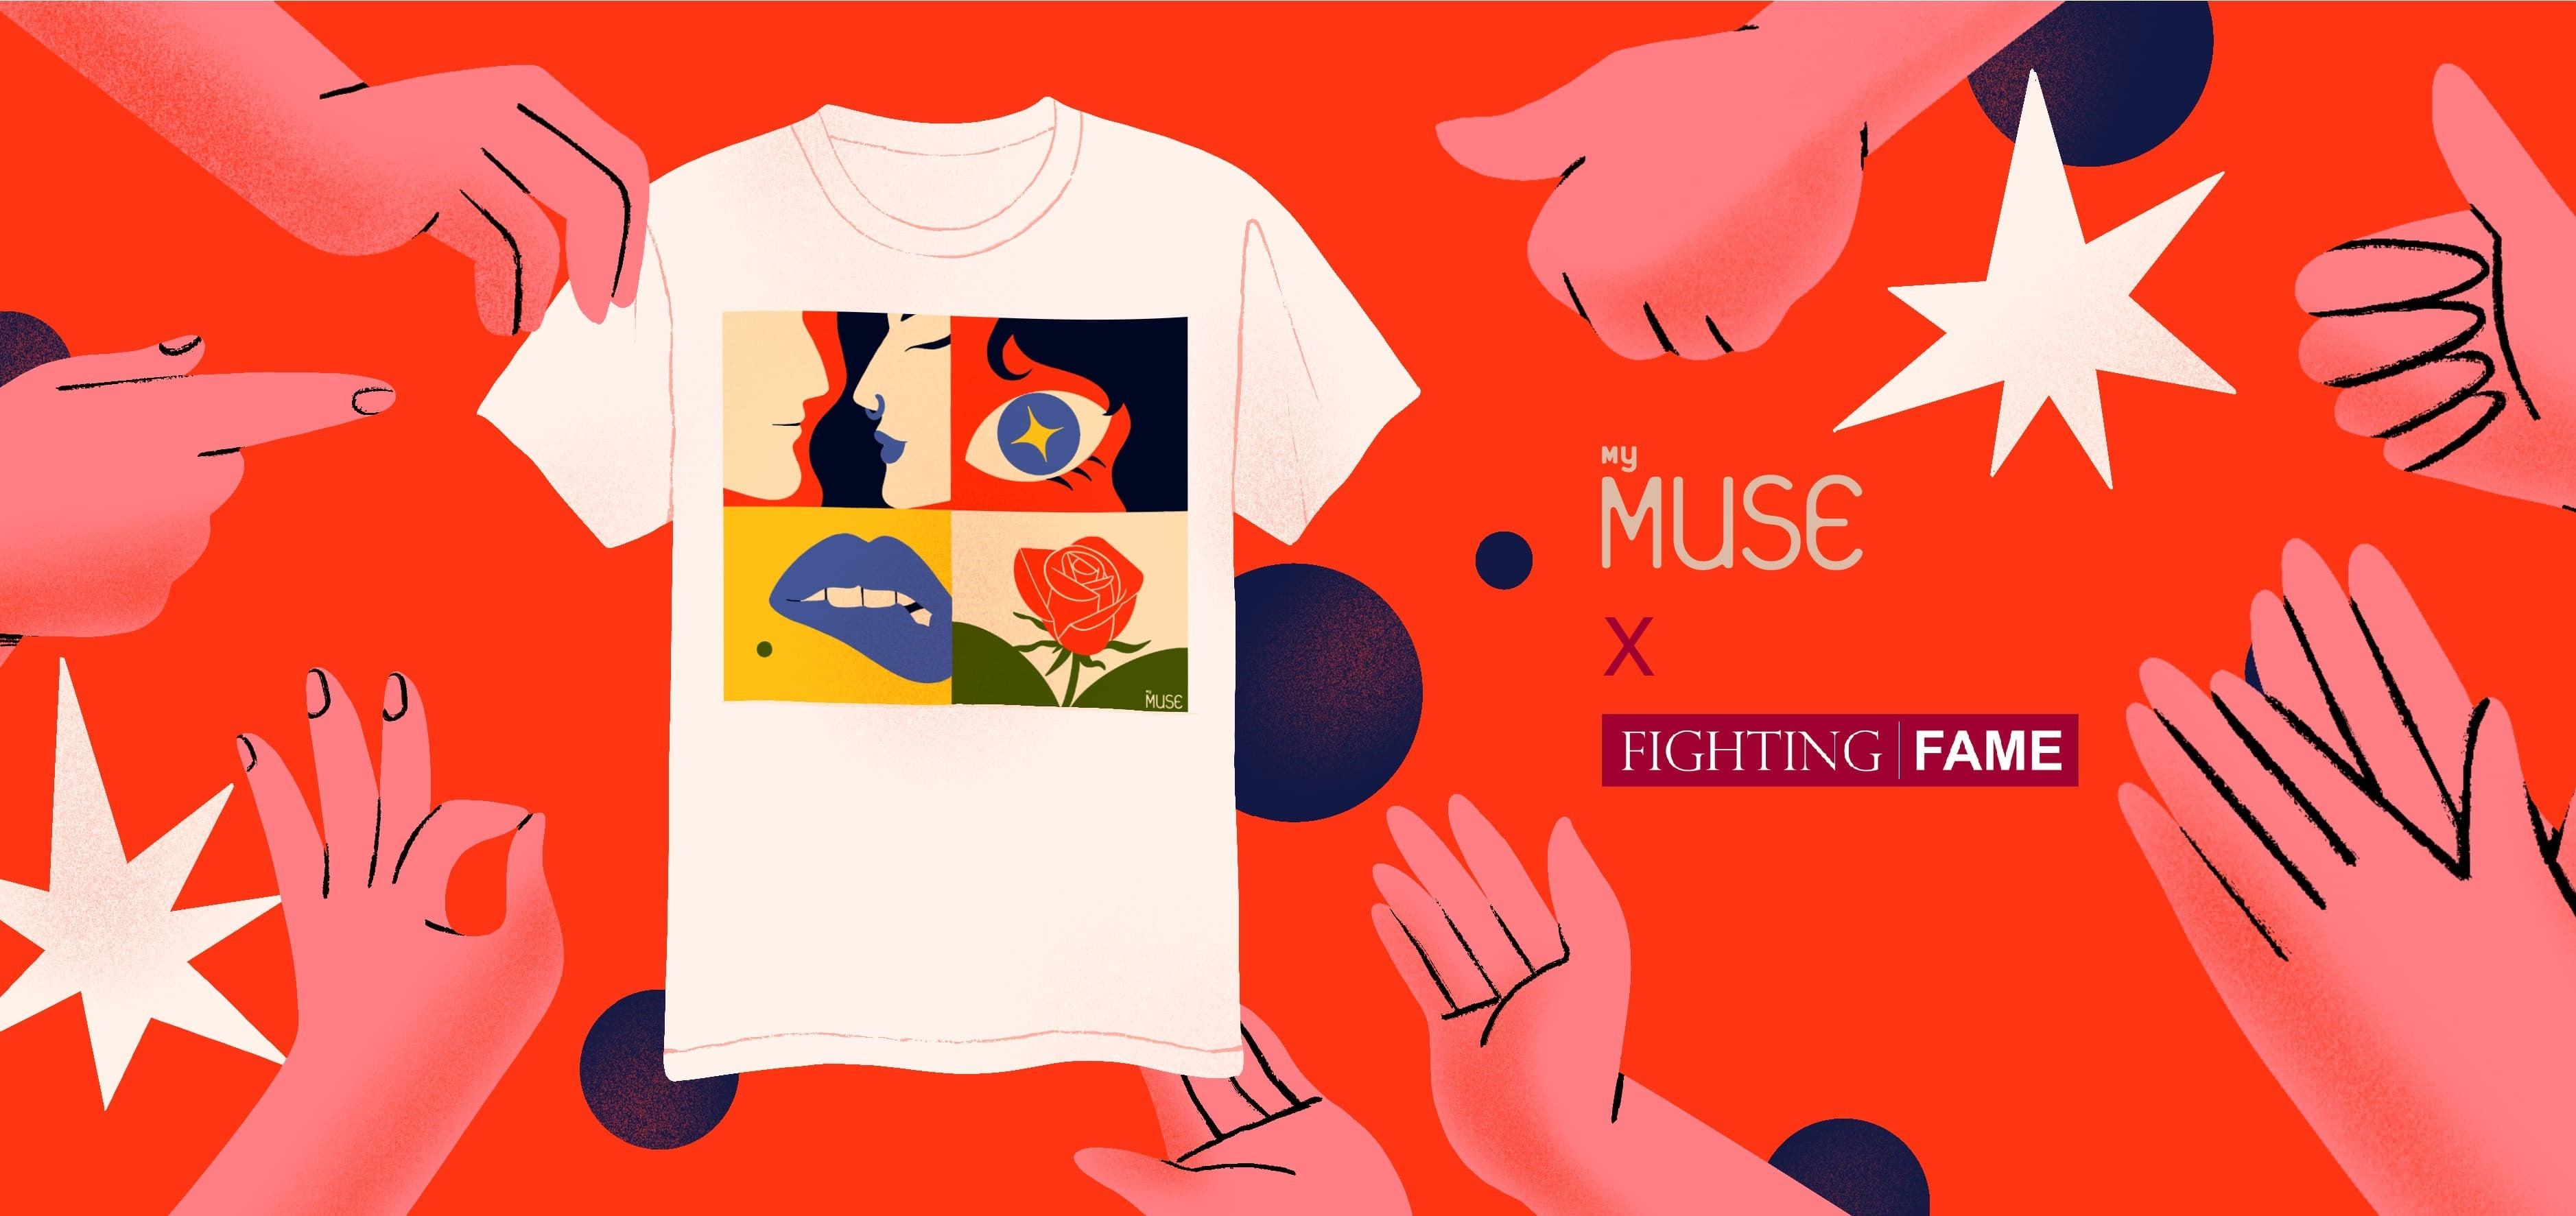 Strangers in the night t-shirt by MyMuse surrounded by hand illustrations celebrating the design